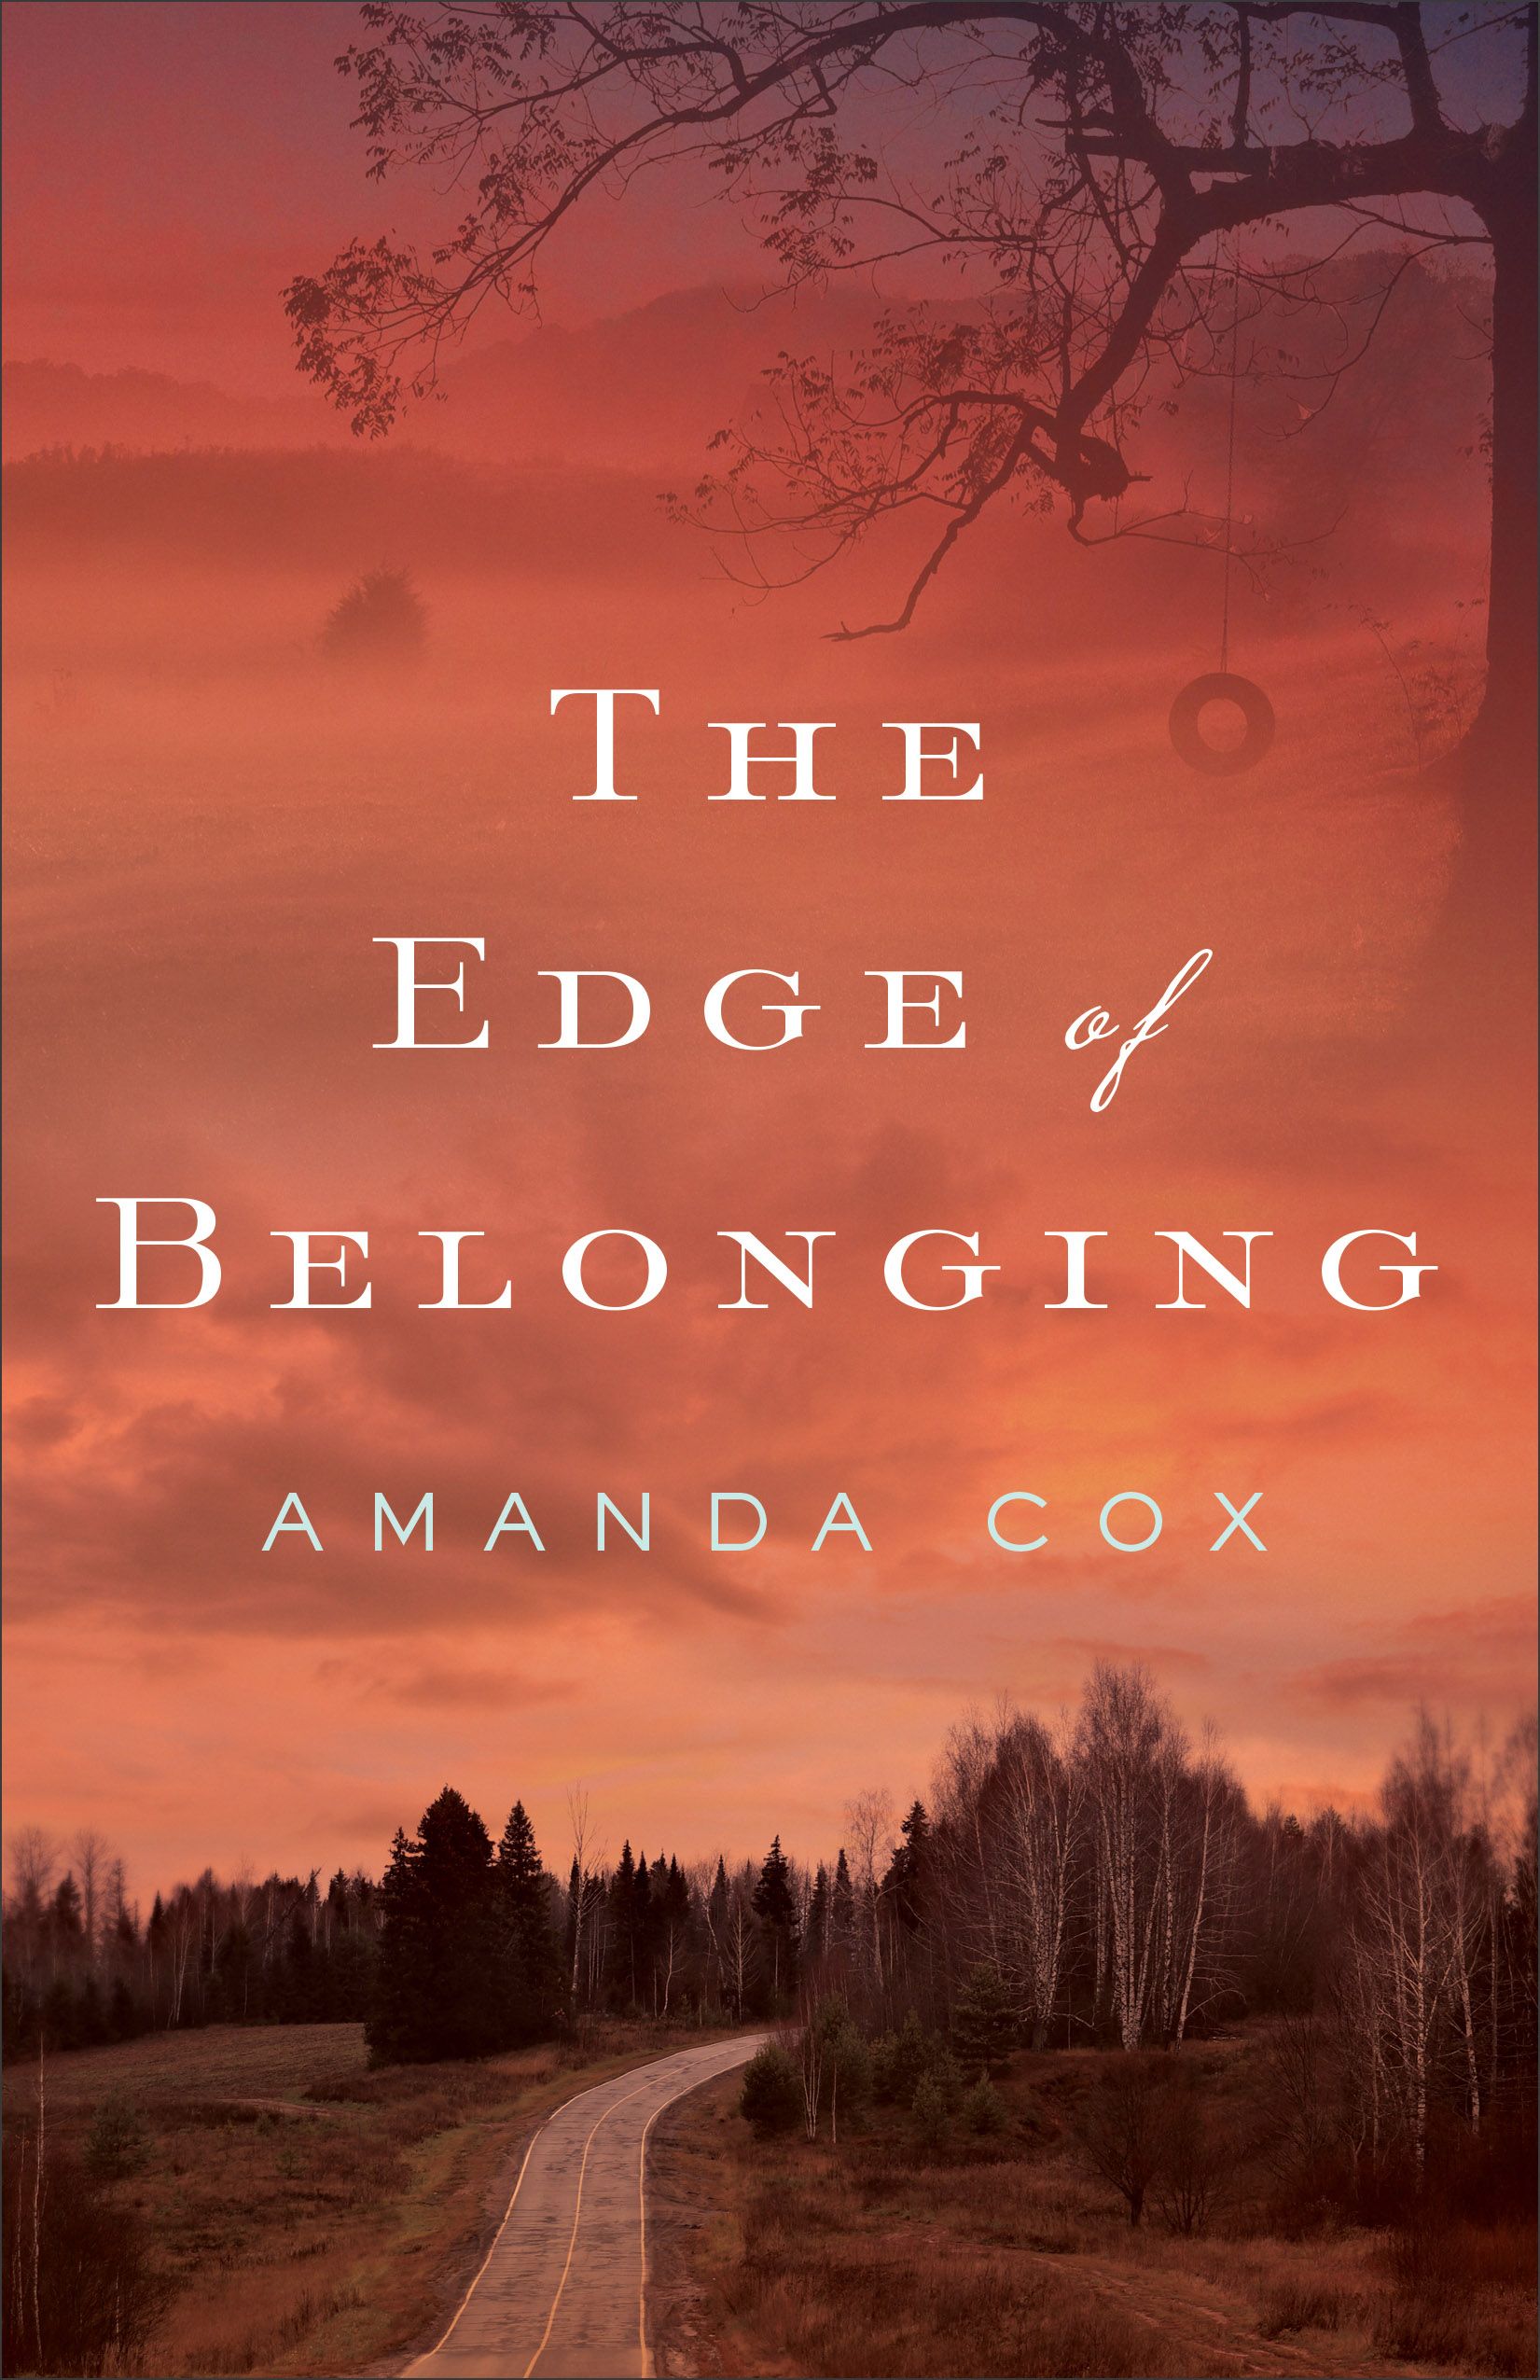 9780800737405_The Edge of Belonging-cover_Revell